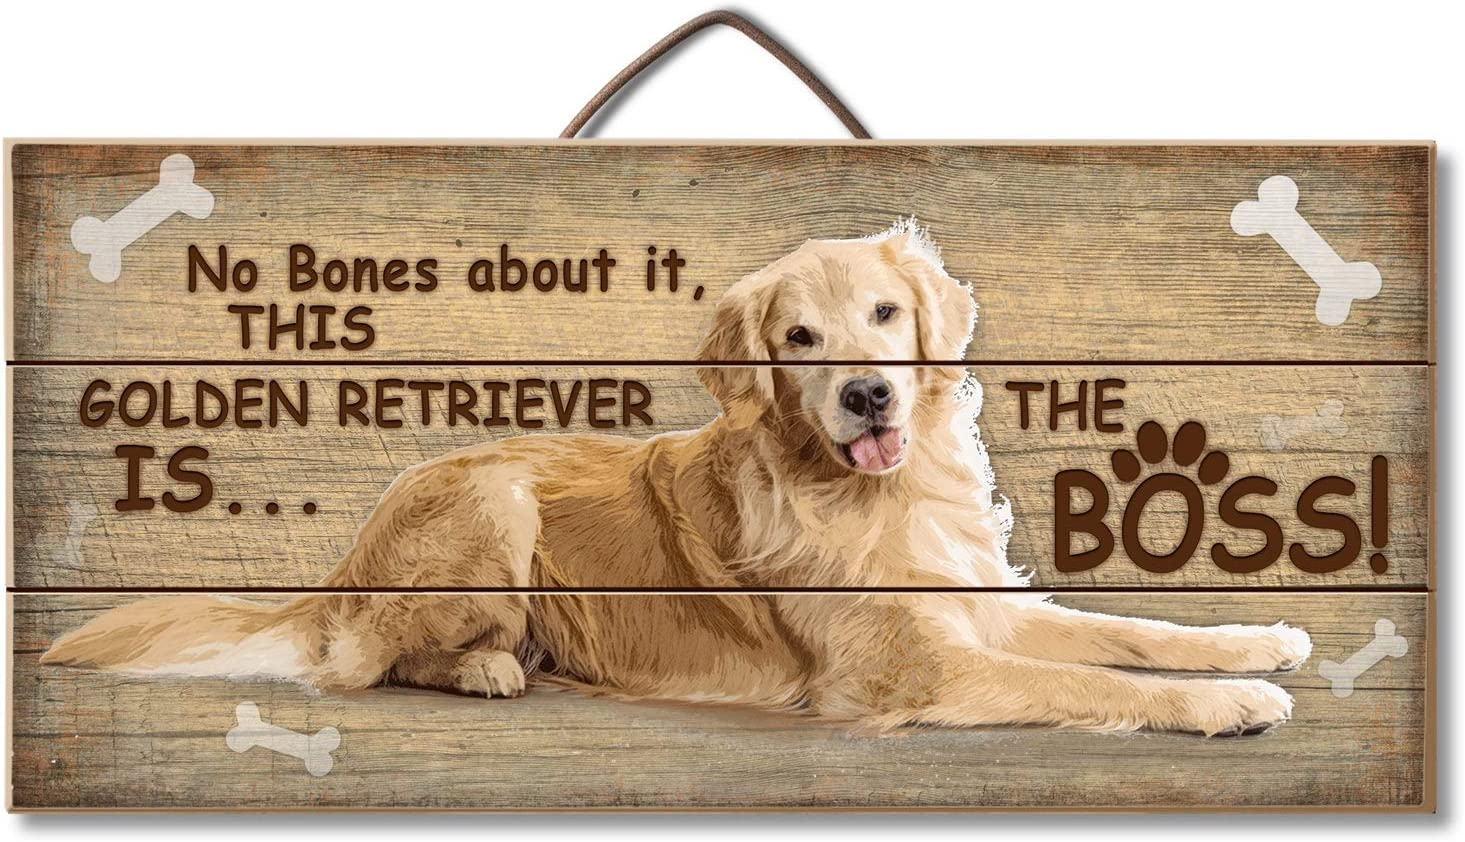 NEW MADE USA PINE WOOD SIGN ART NO BONES ABOUT IT THIS DOG IS BOSS DASCHUND